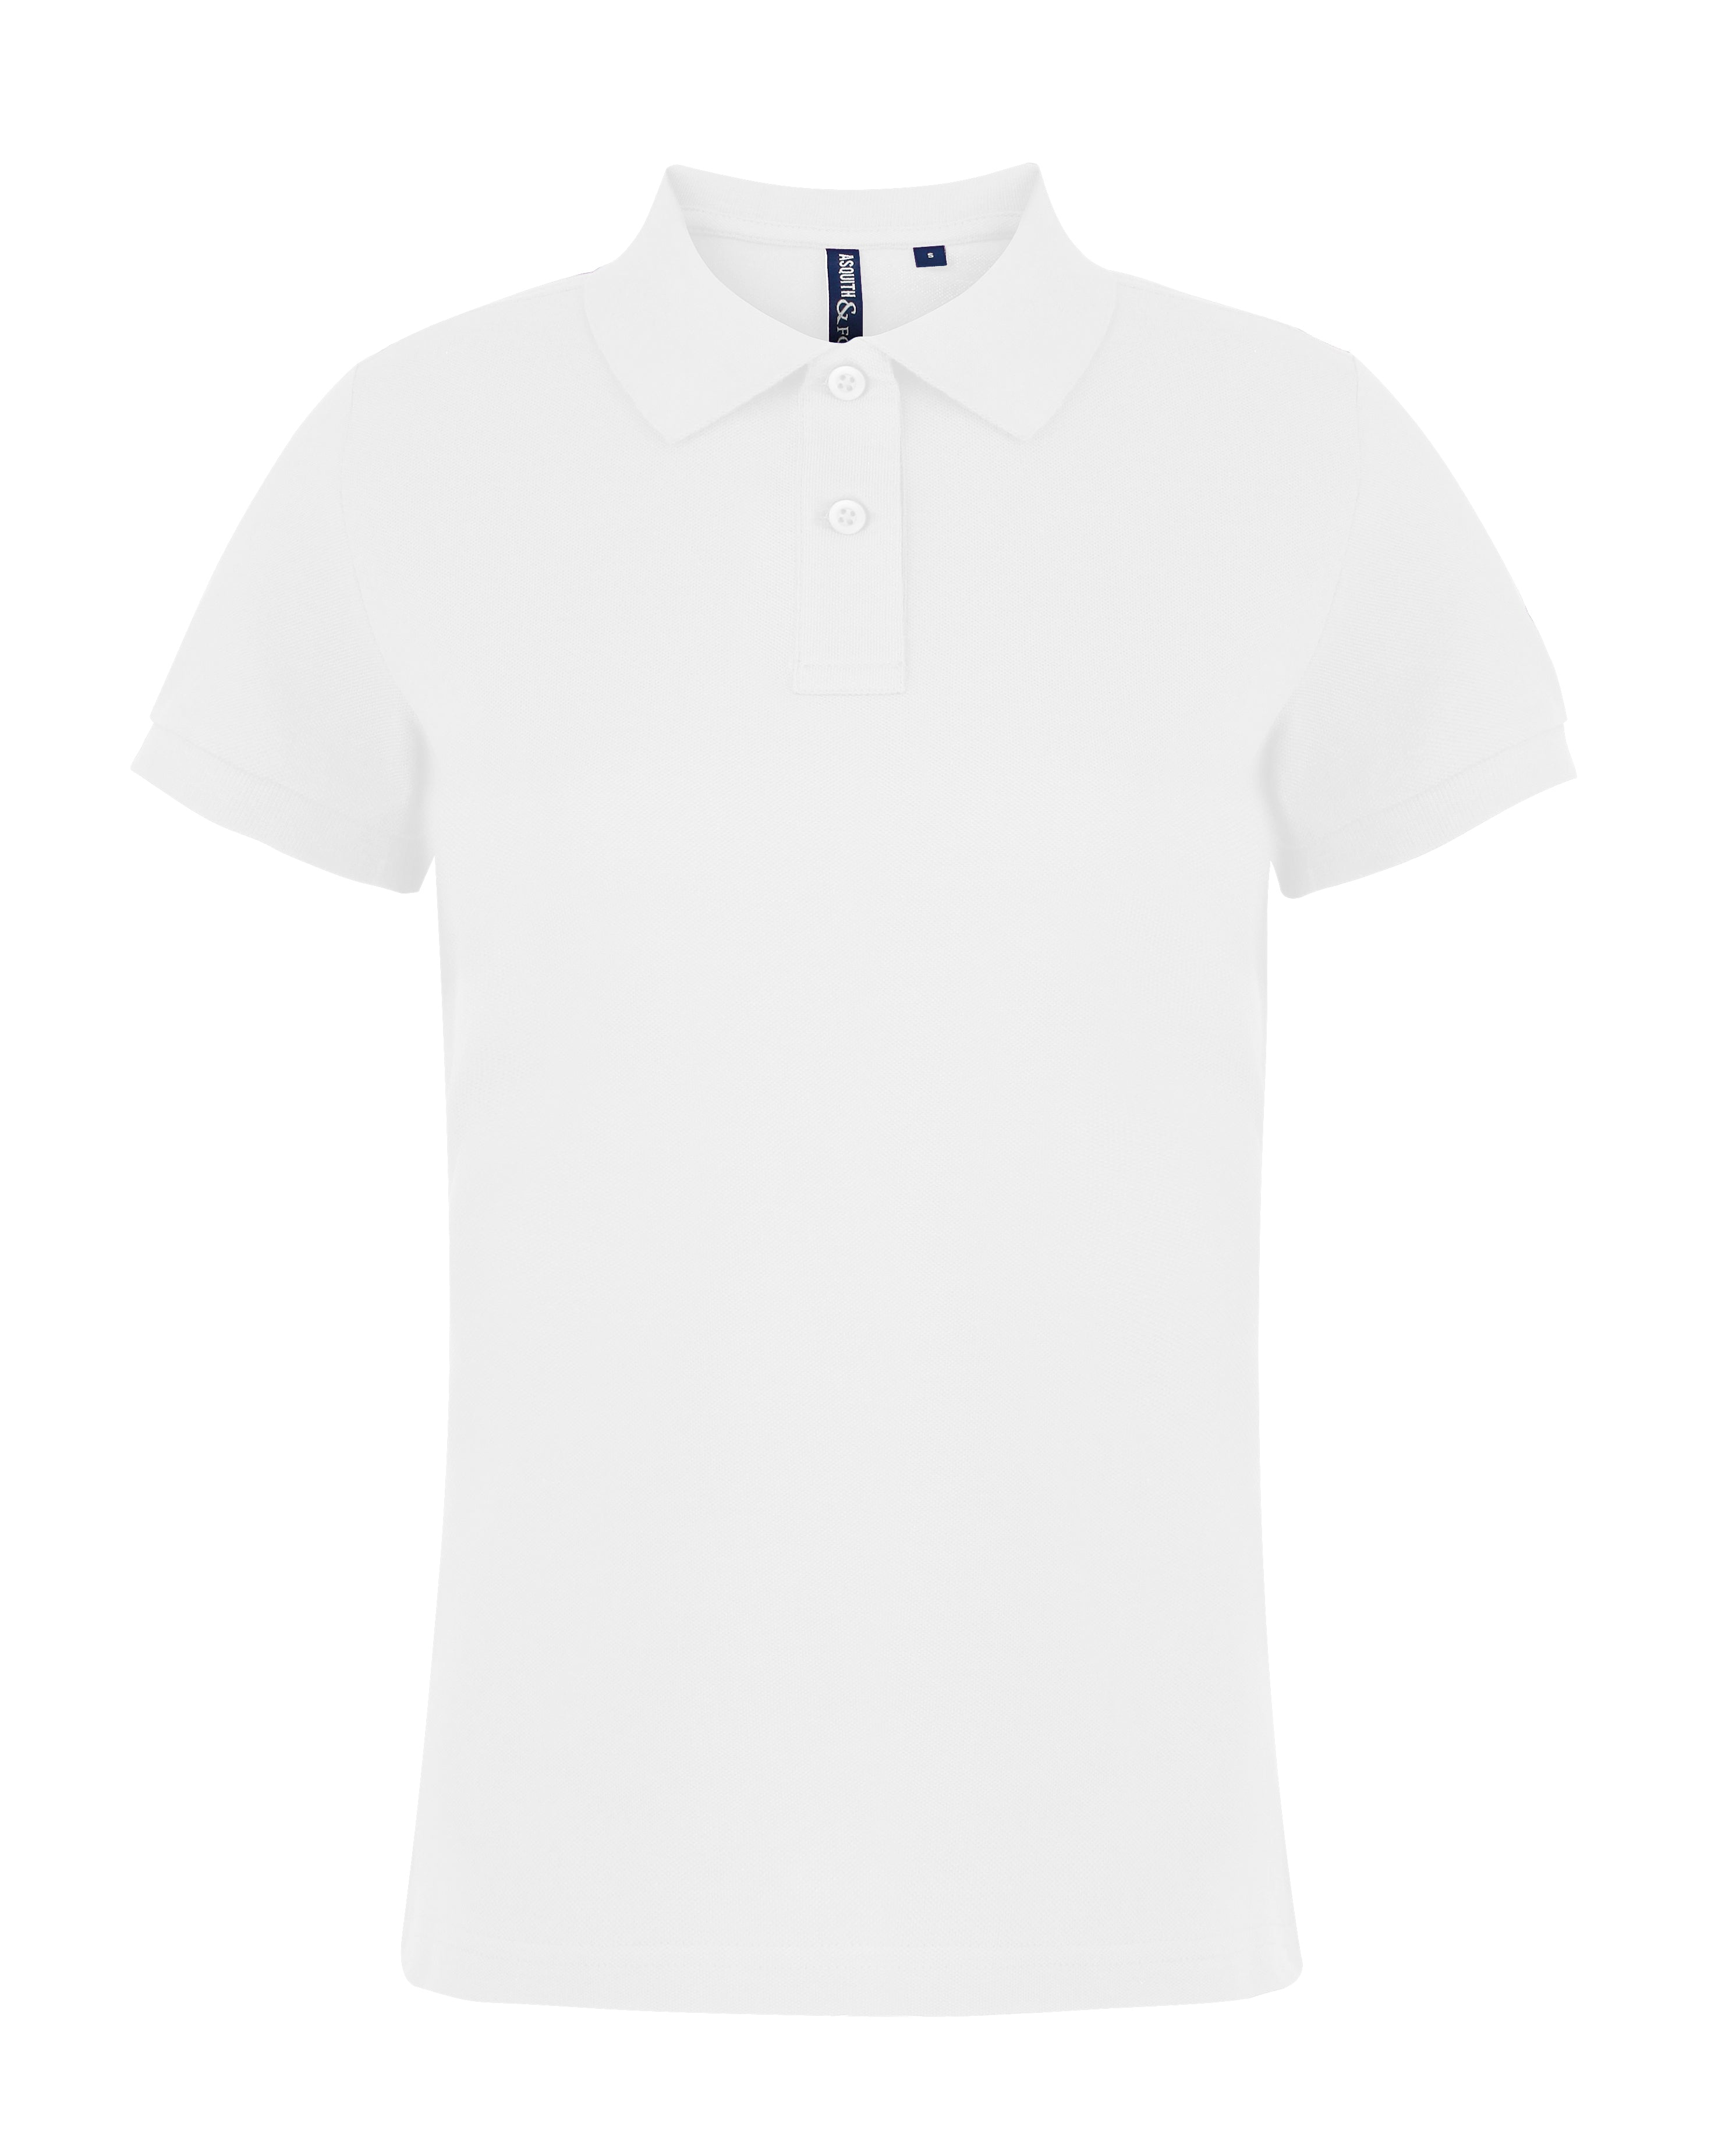 Women's Branded Polo With Embroidered Pocket Logo - Illustrated Identity Ltd.